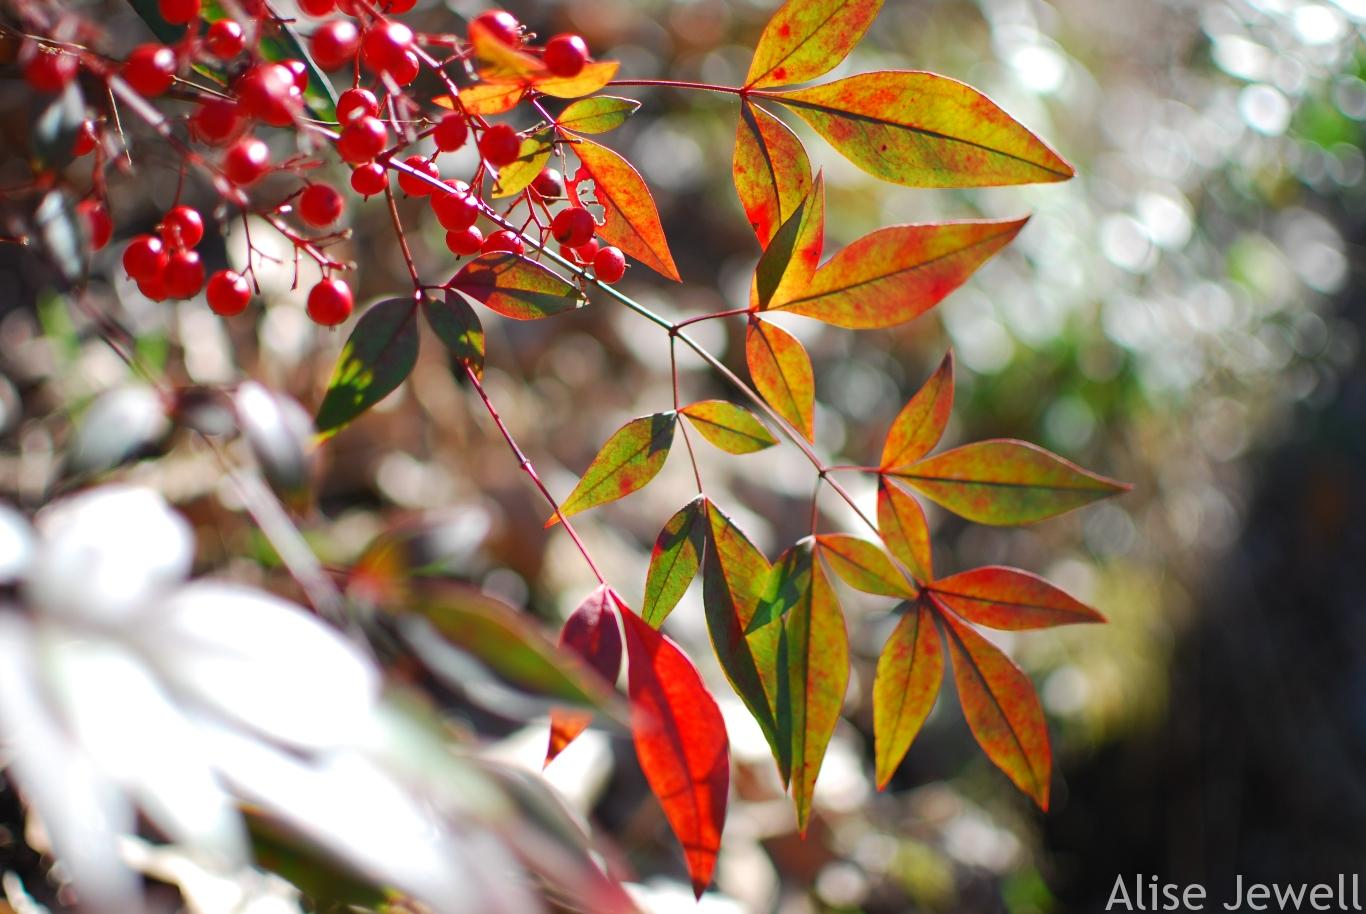 Nandina leaves and berries